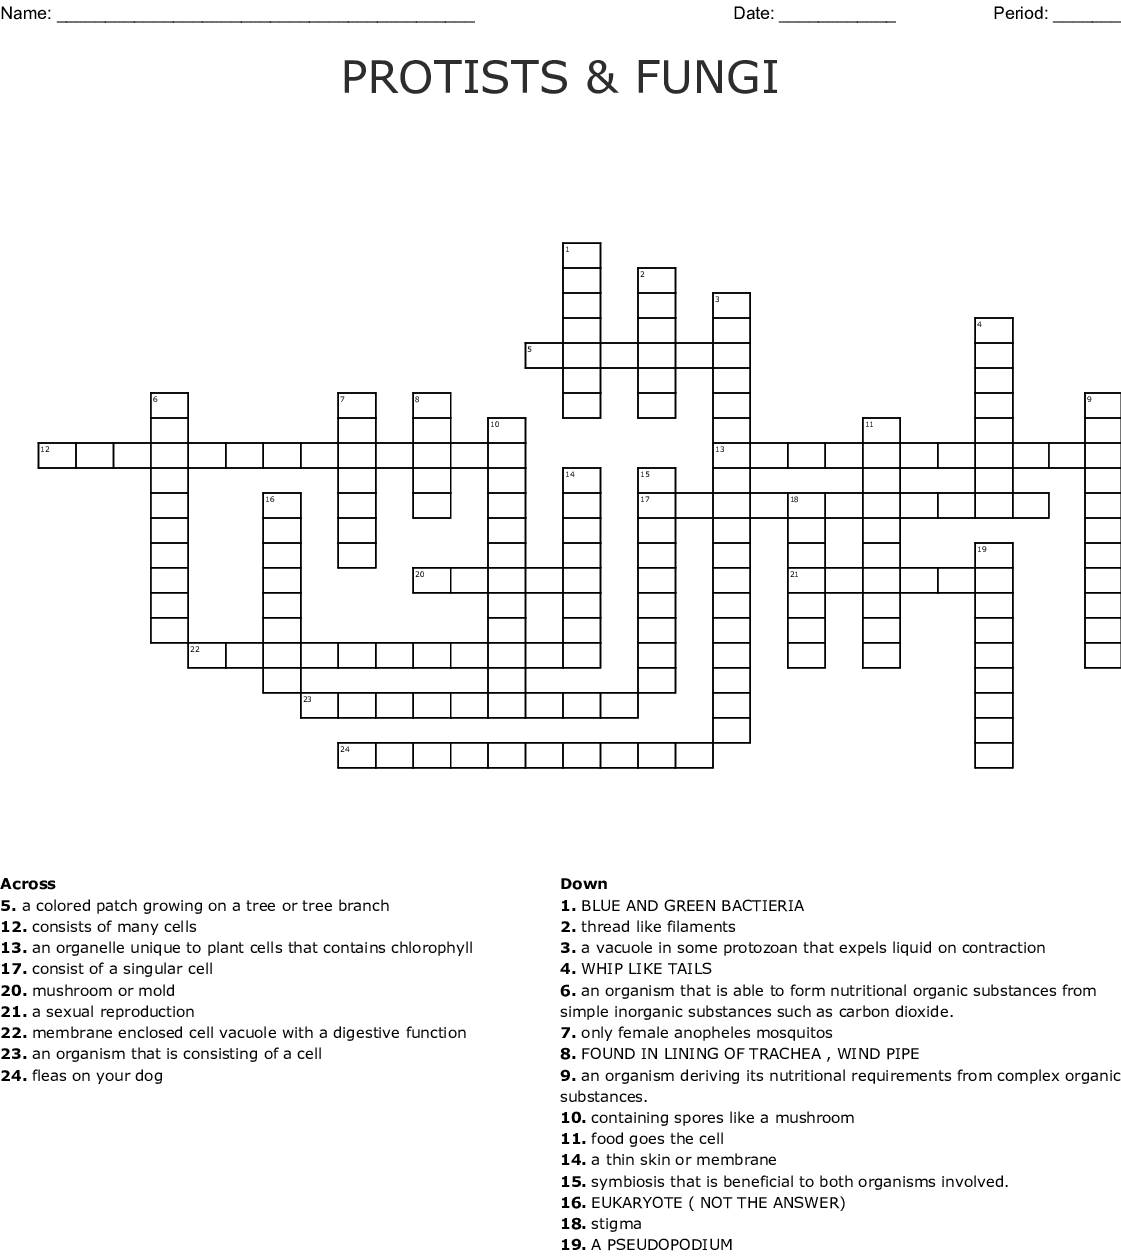 Protists And Fungi Crossword